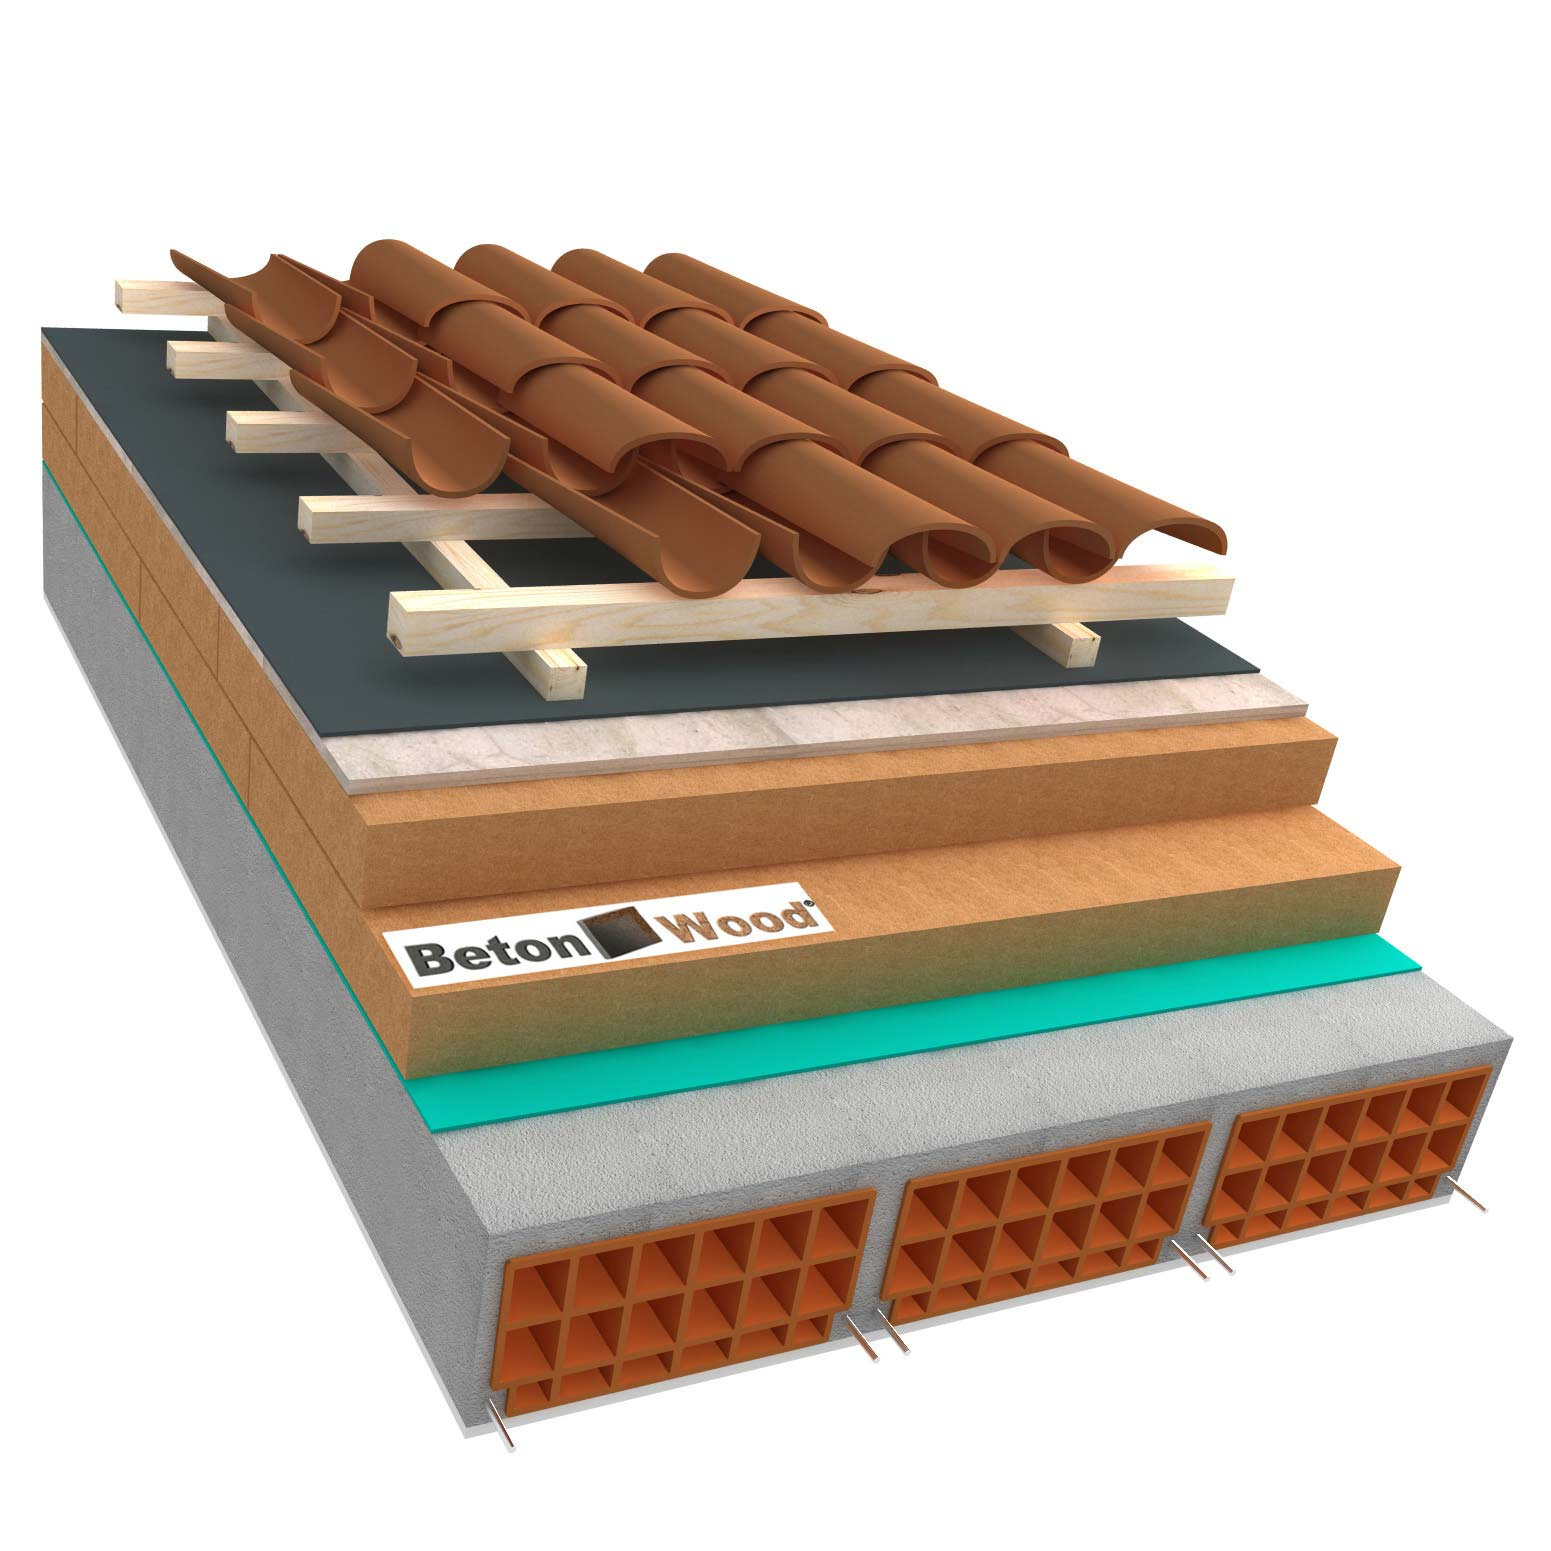 Ventilated roof with fiber wood Special and cement bonded particle boards on concrete